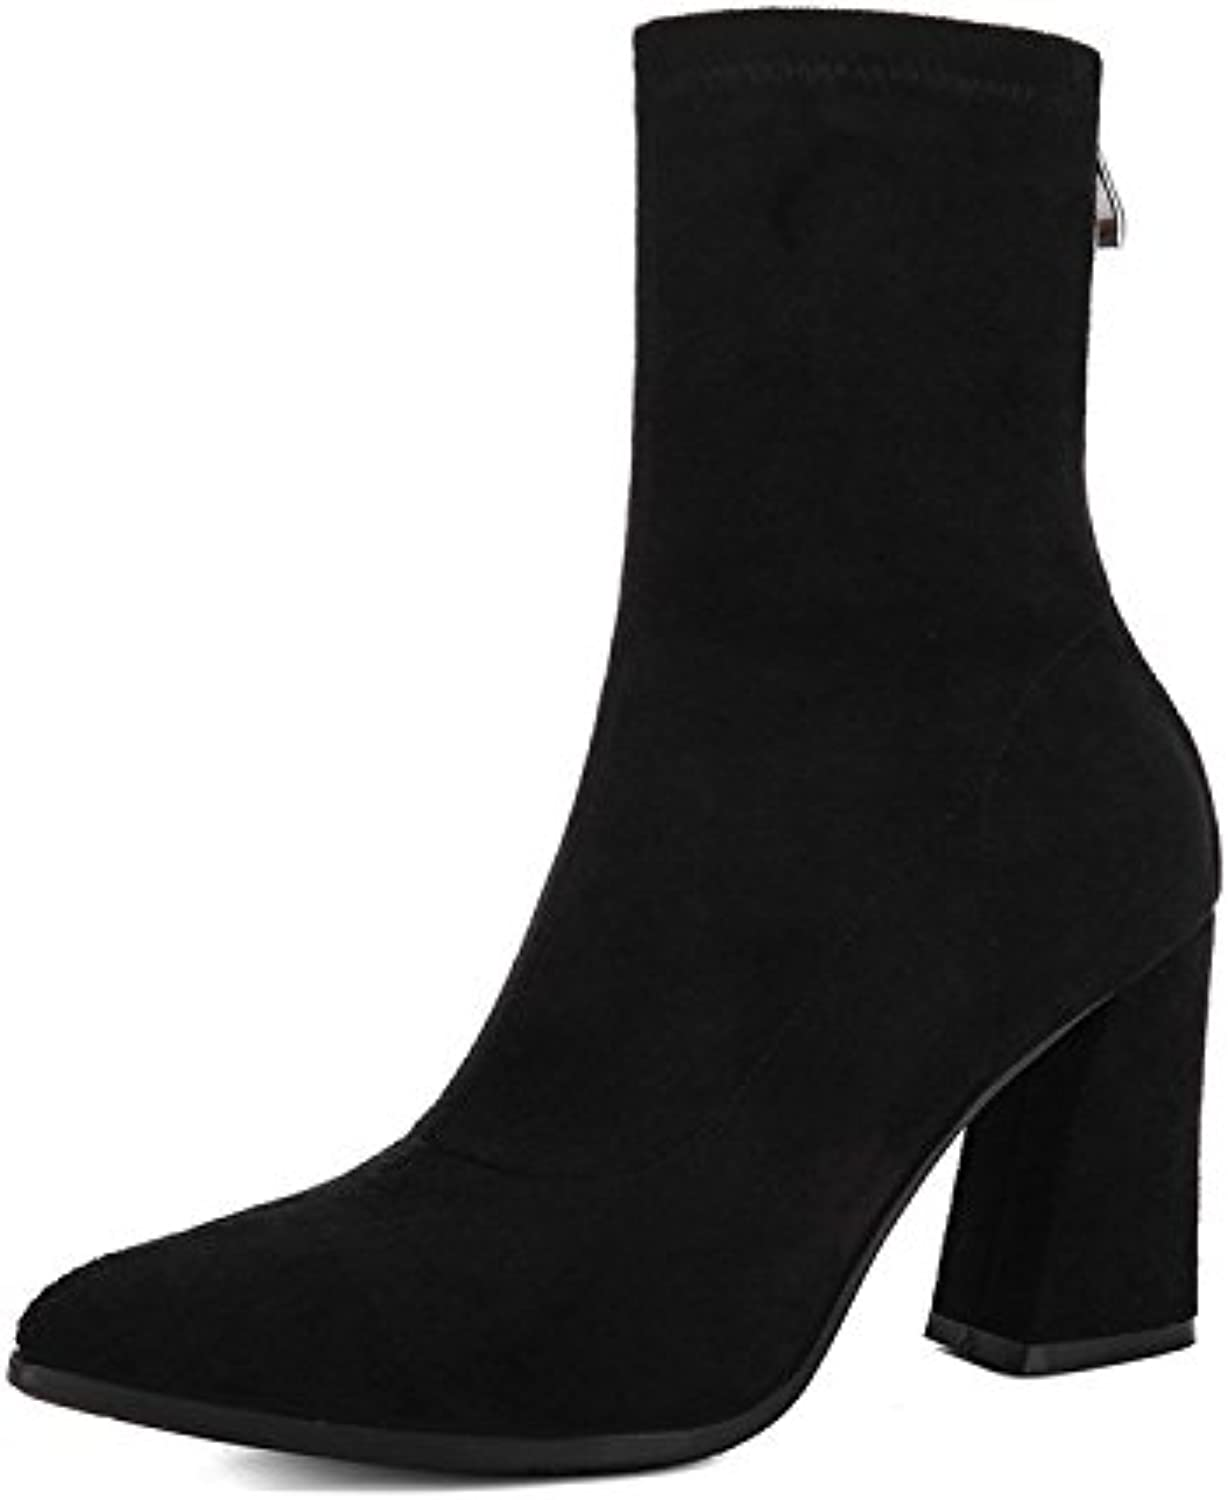 WYMBS Women's shoes Rough with Short Boots Autumn Winter Elasticity Stovepipe Pointed High-Heel Boots,Black,34